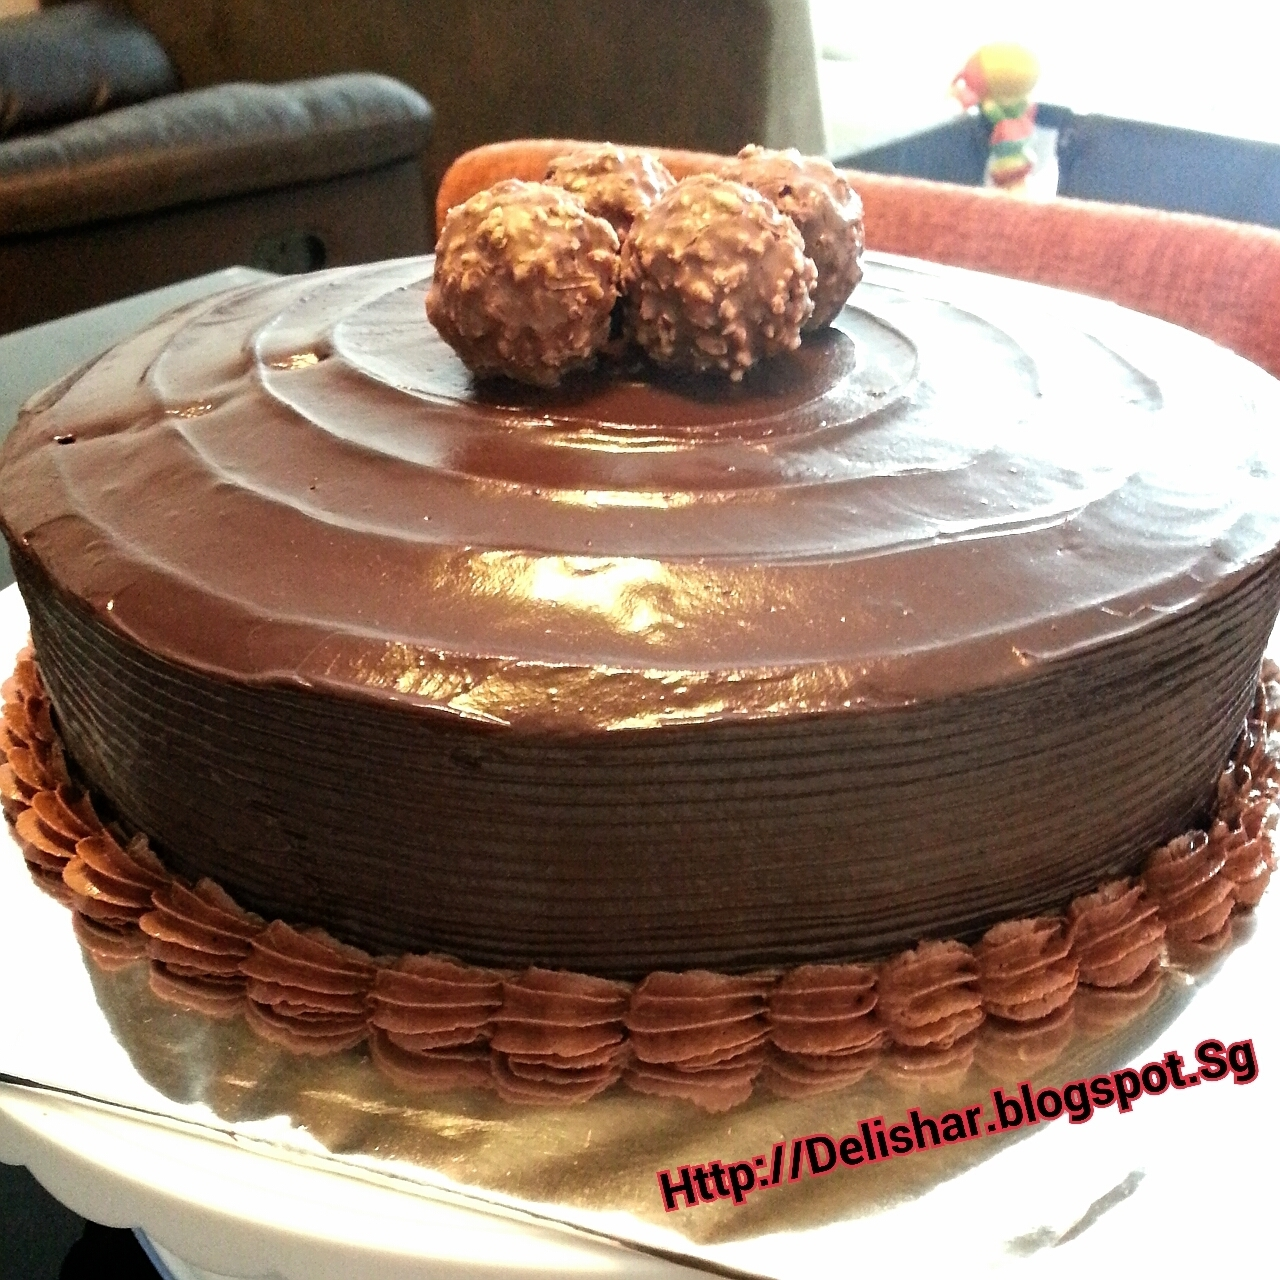 Chocolate Fudge Cake with Chocolate Ganache Frosting and Filling